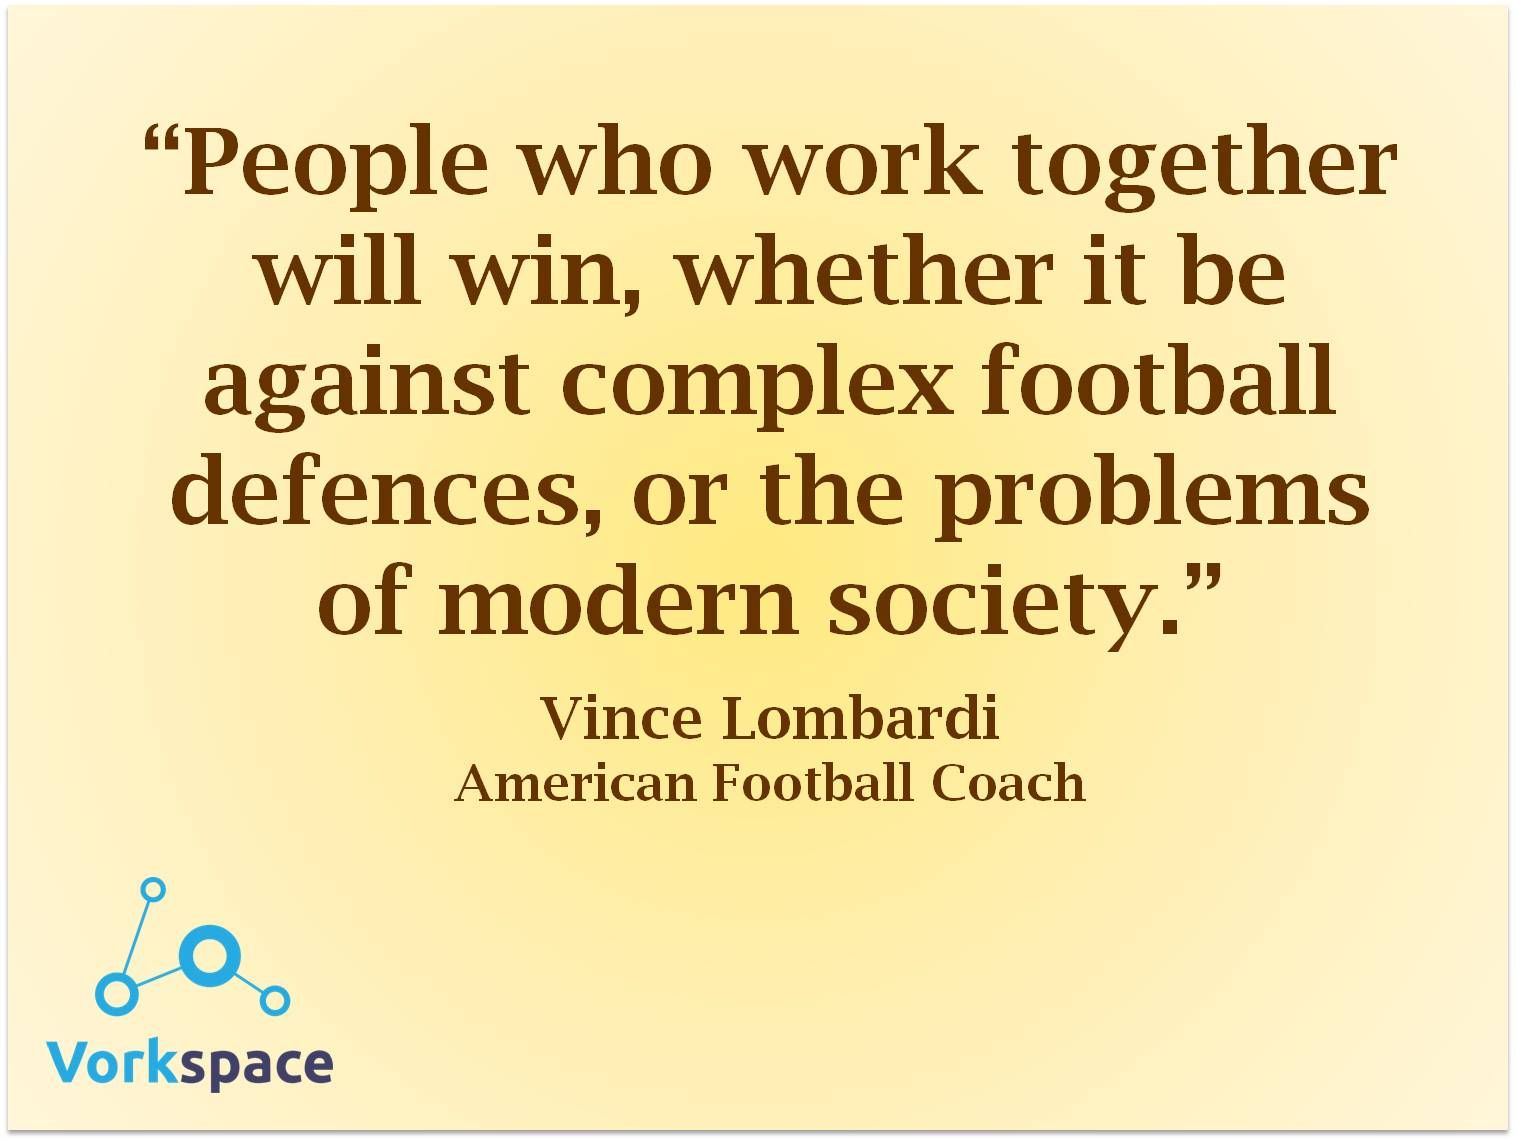 People who work together will win